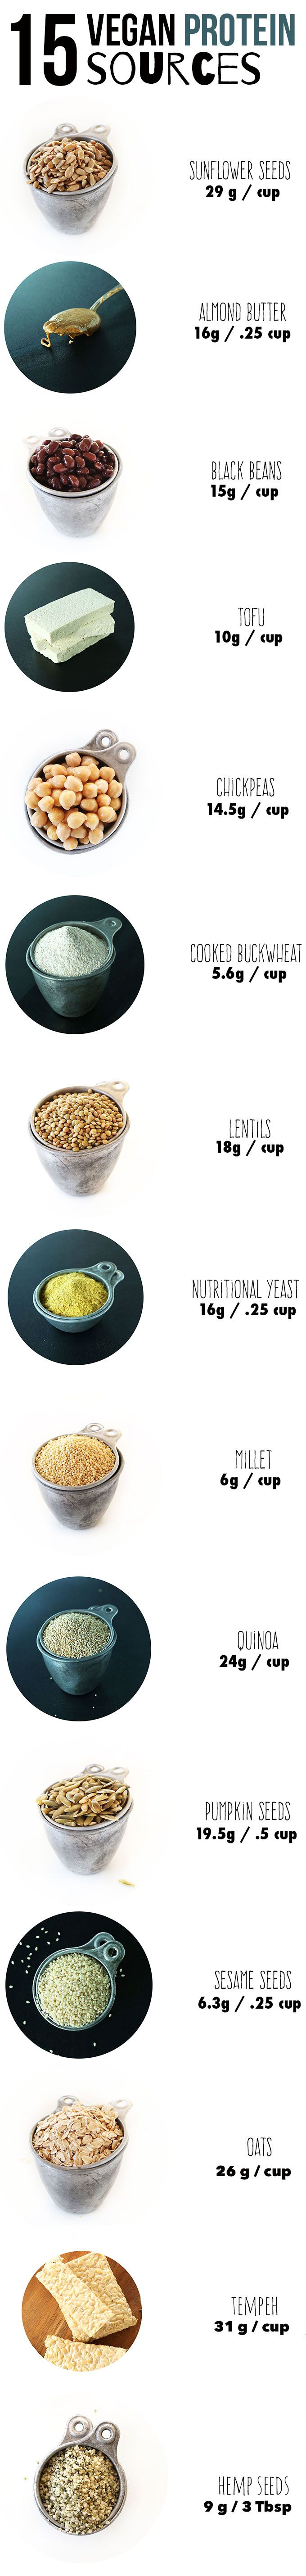 15 CLEAN, Healthy Vegan Protein Sources with Grams Per Serving! #vegan #plantbased http://fitnesstogether.com/north-attleboro http://fitnesstogether.com/mansfield